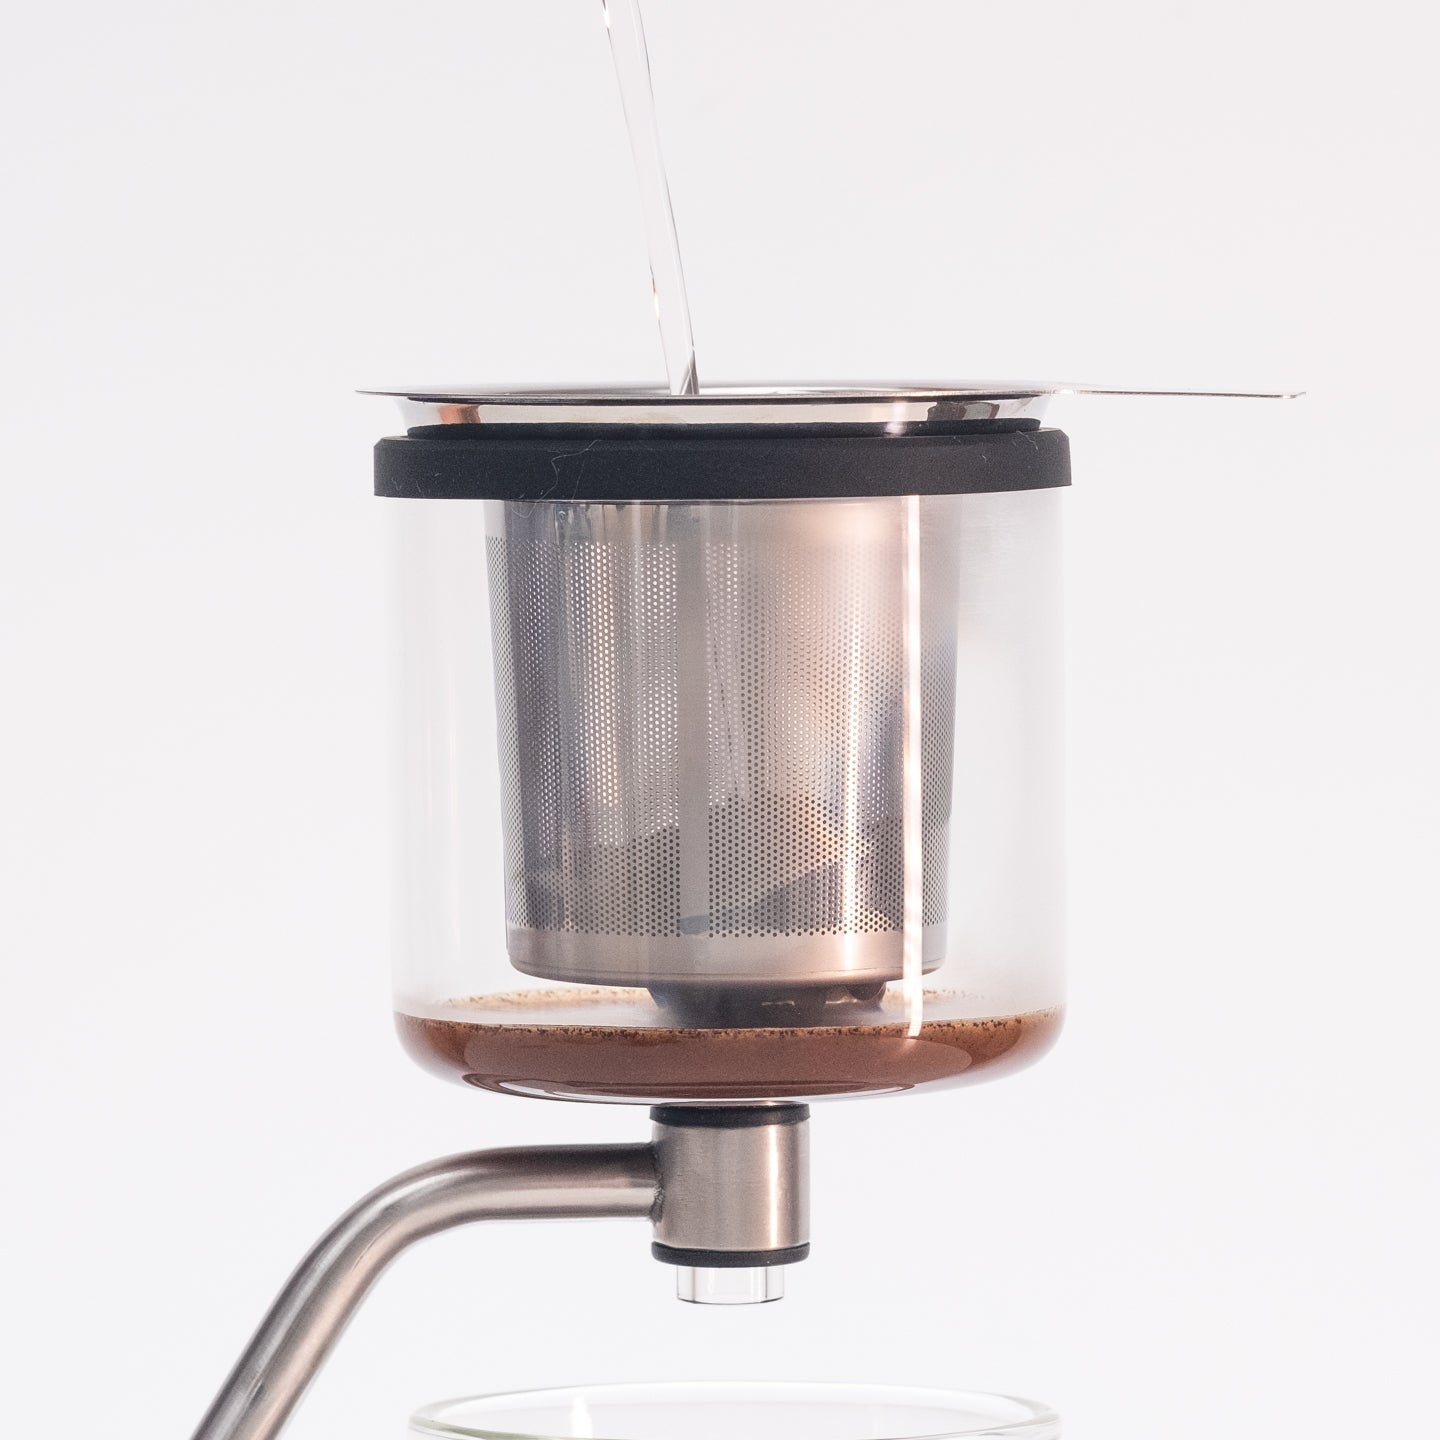 Brew Chamber (Barisieur Attachment)